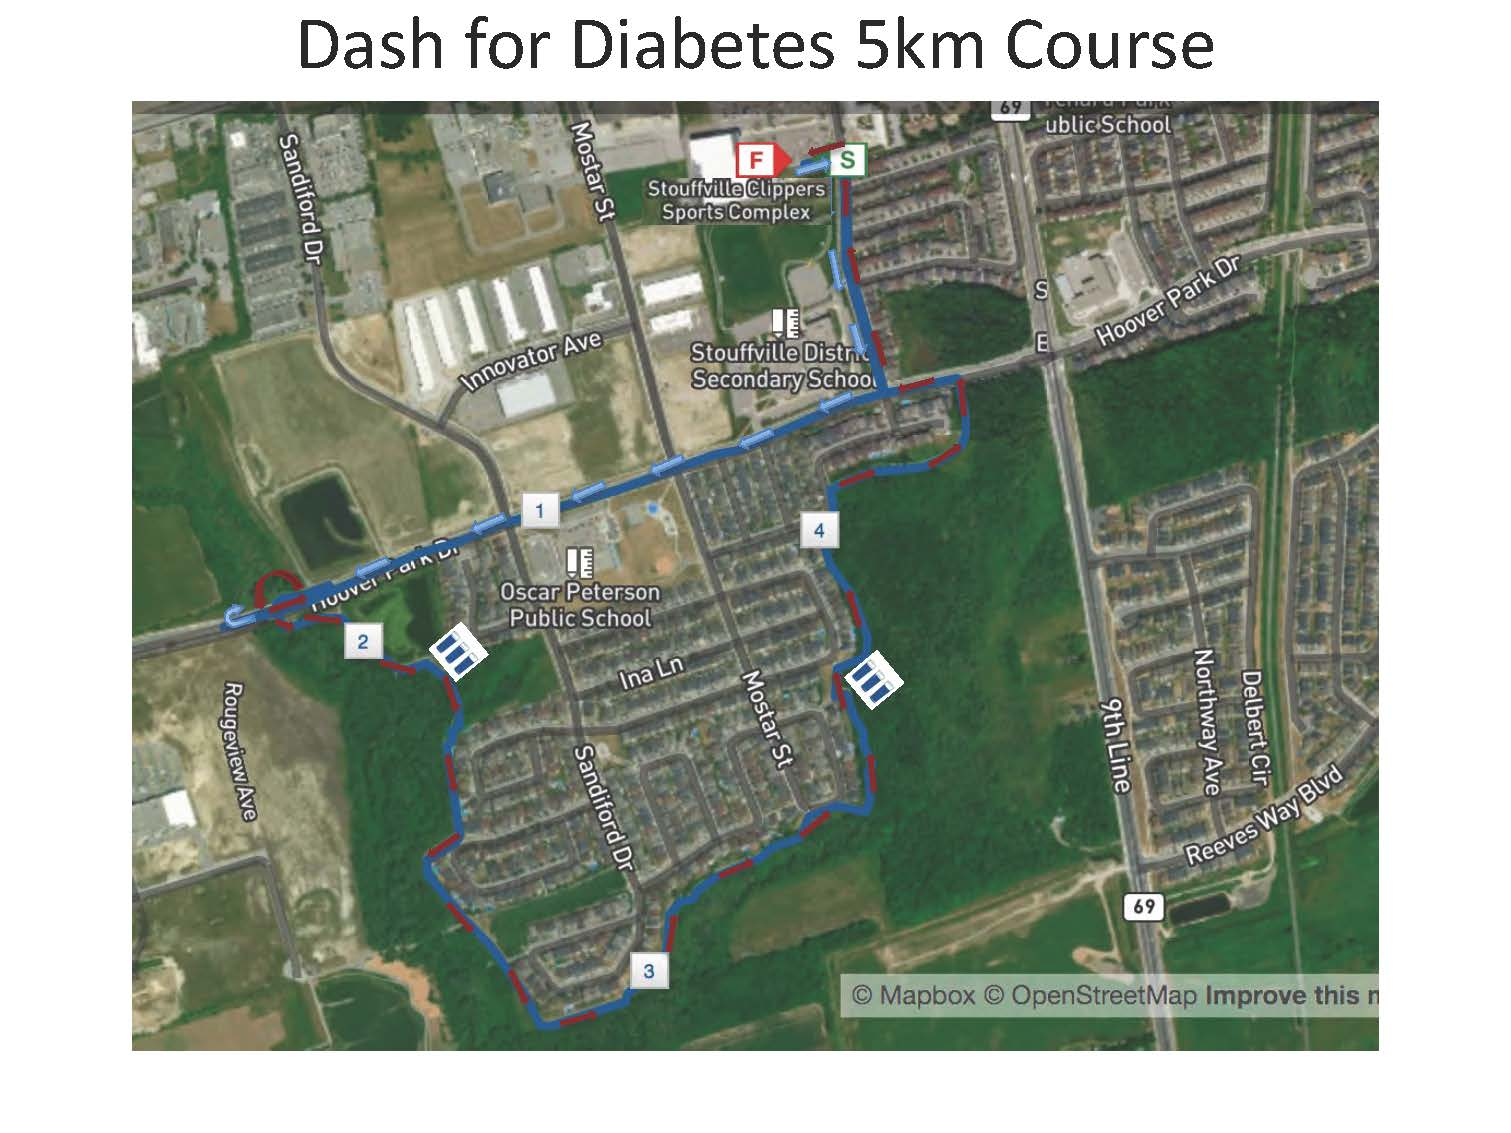 2019 Dashfor Diabetes5 KMap